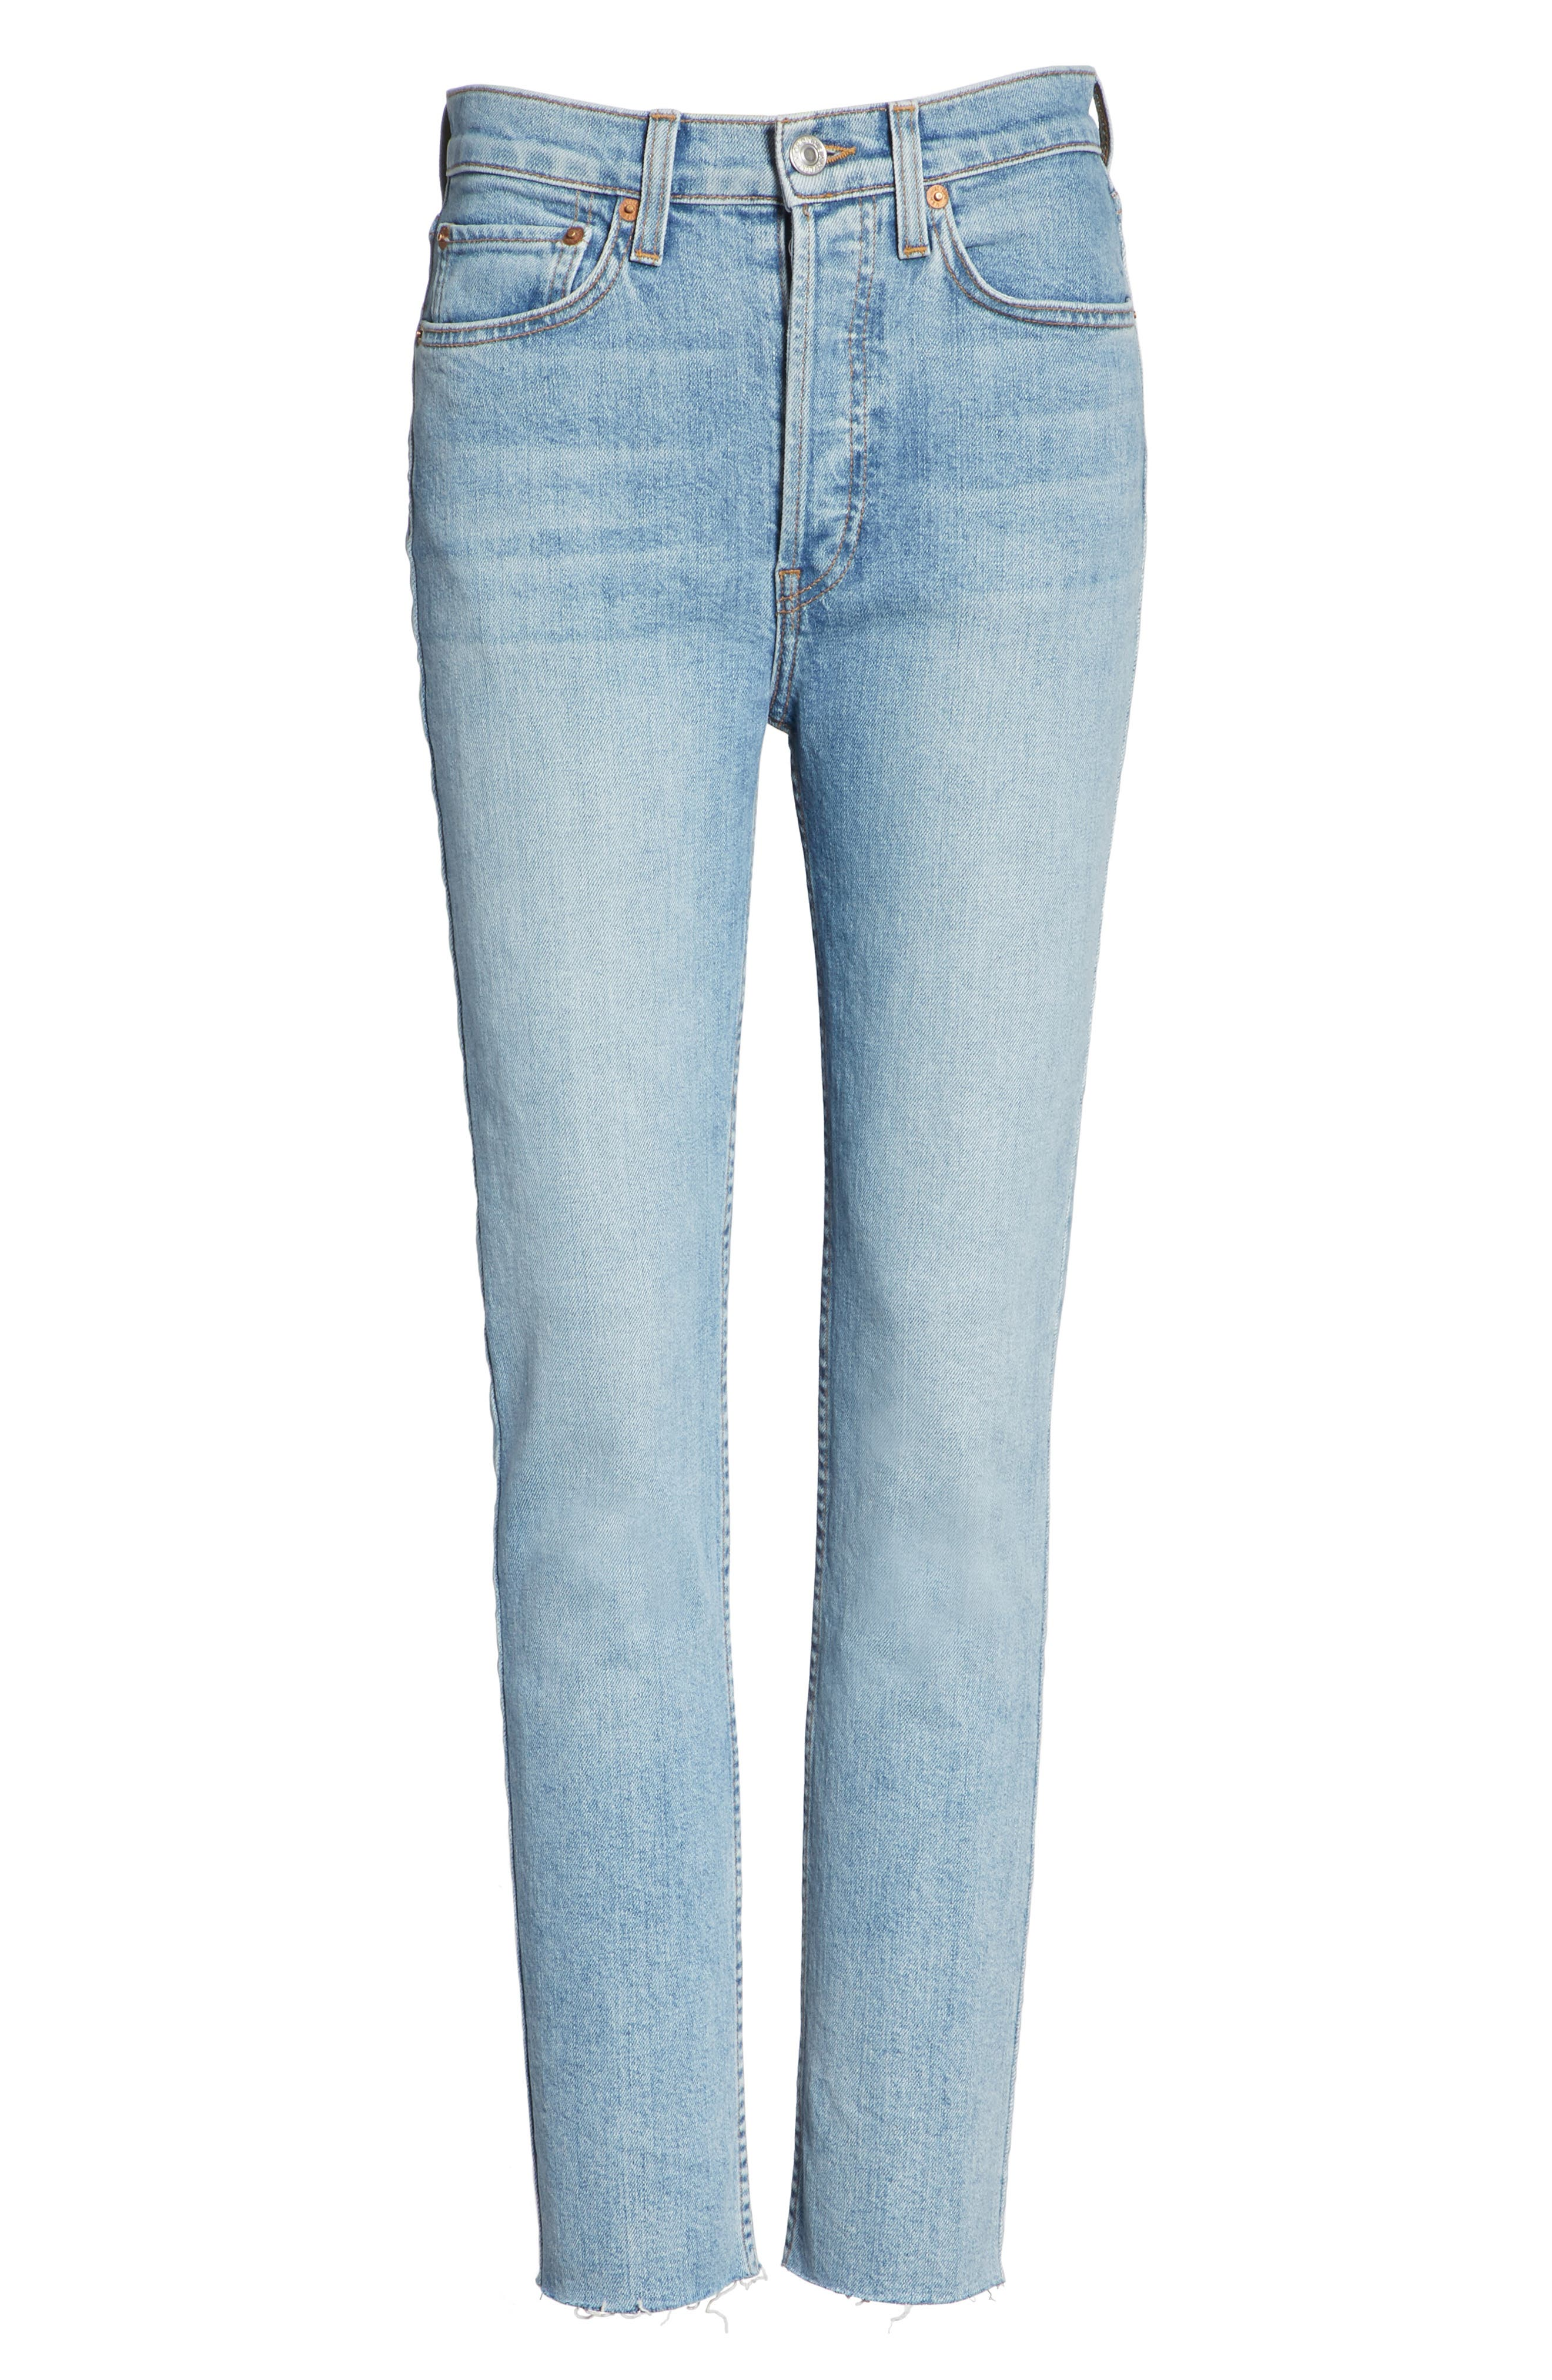 High Waist Stretch Crop Jeans,                             Alternate thumbnail 6, color,                             400